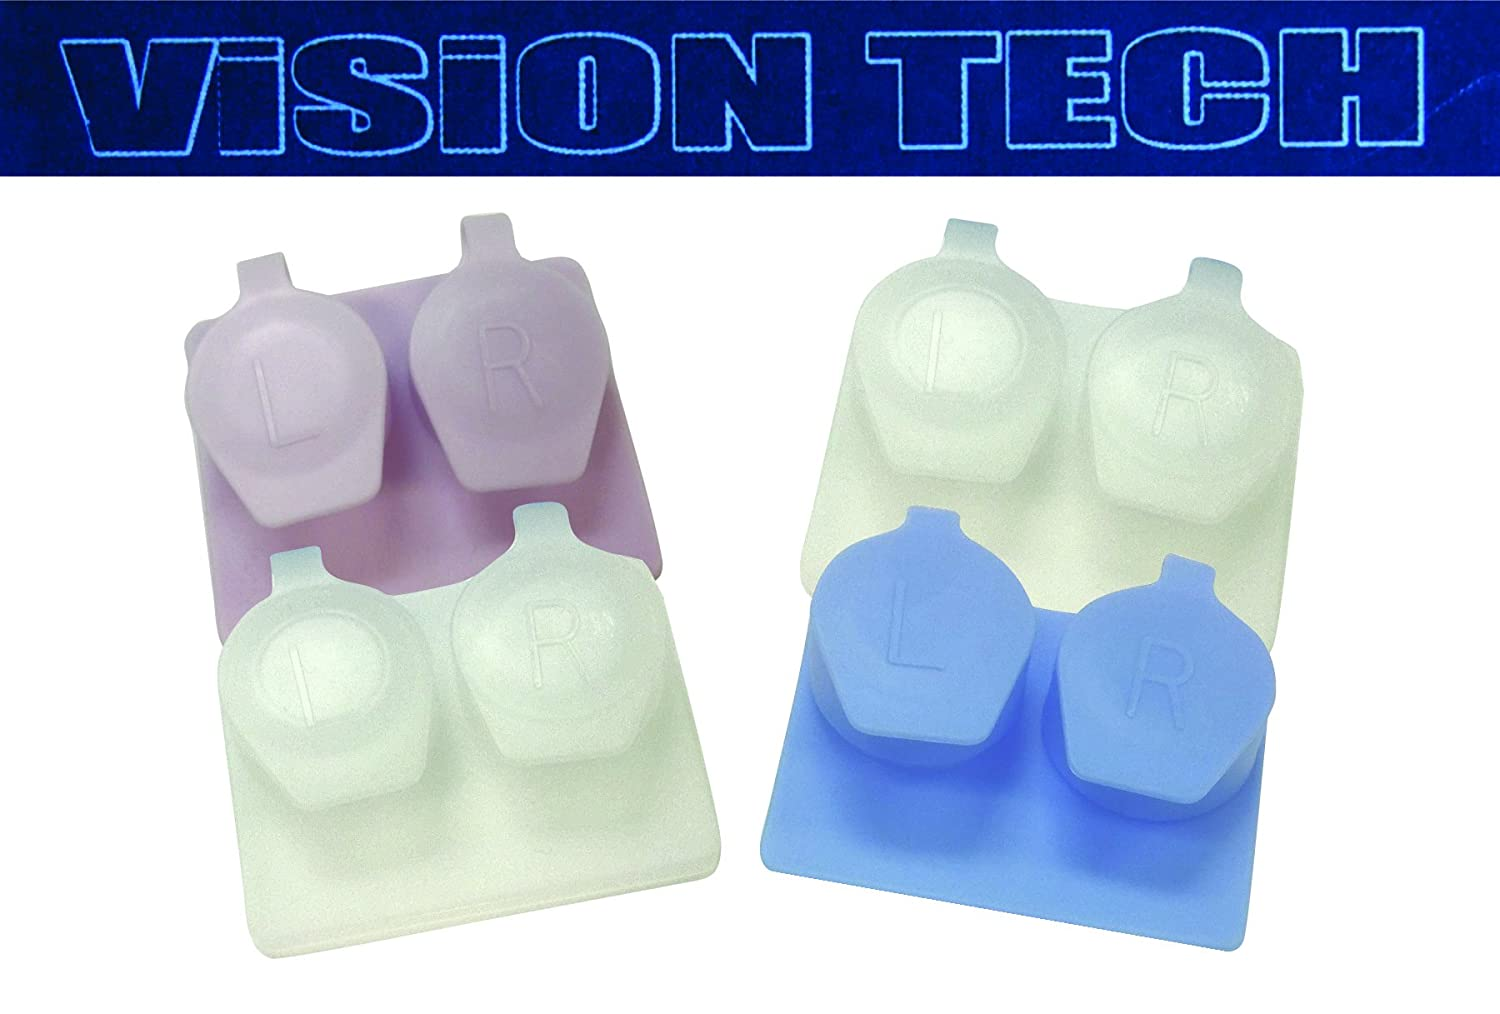 Flip Top Contact Lens Case - 4 Pack - Variety Pack - Vision Tech Plastic Technologies Inc.